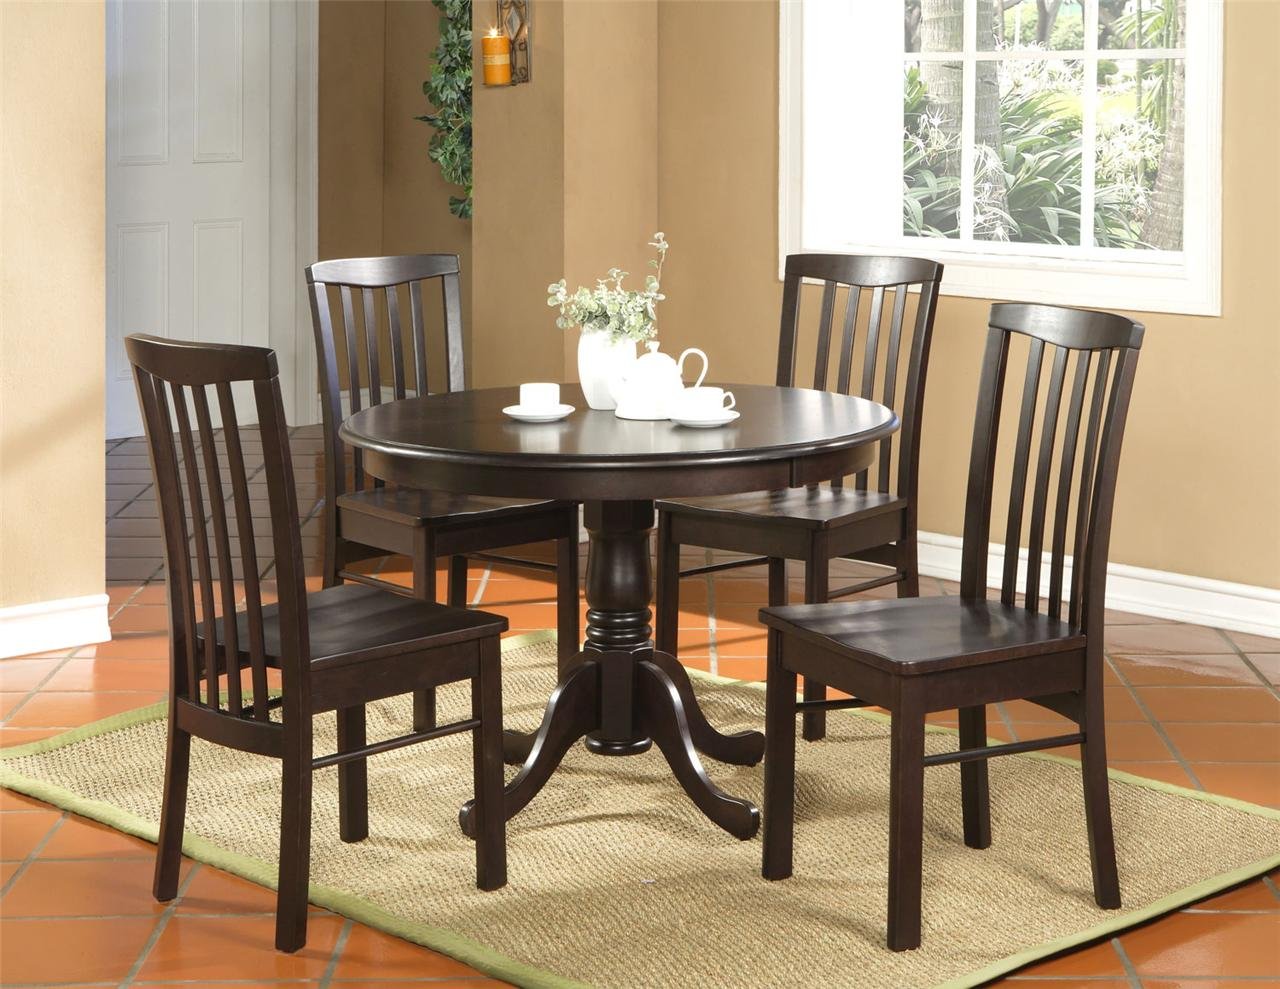 5pc round kitchen dinette set table and 4 chairs walnut ebay for Kitchen dining sets